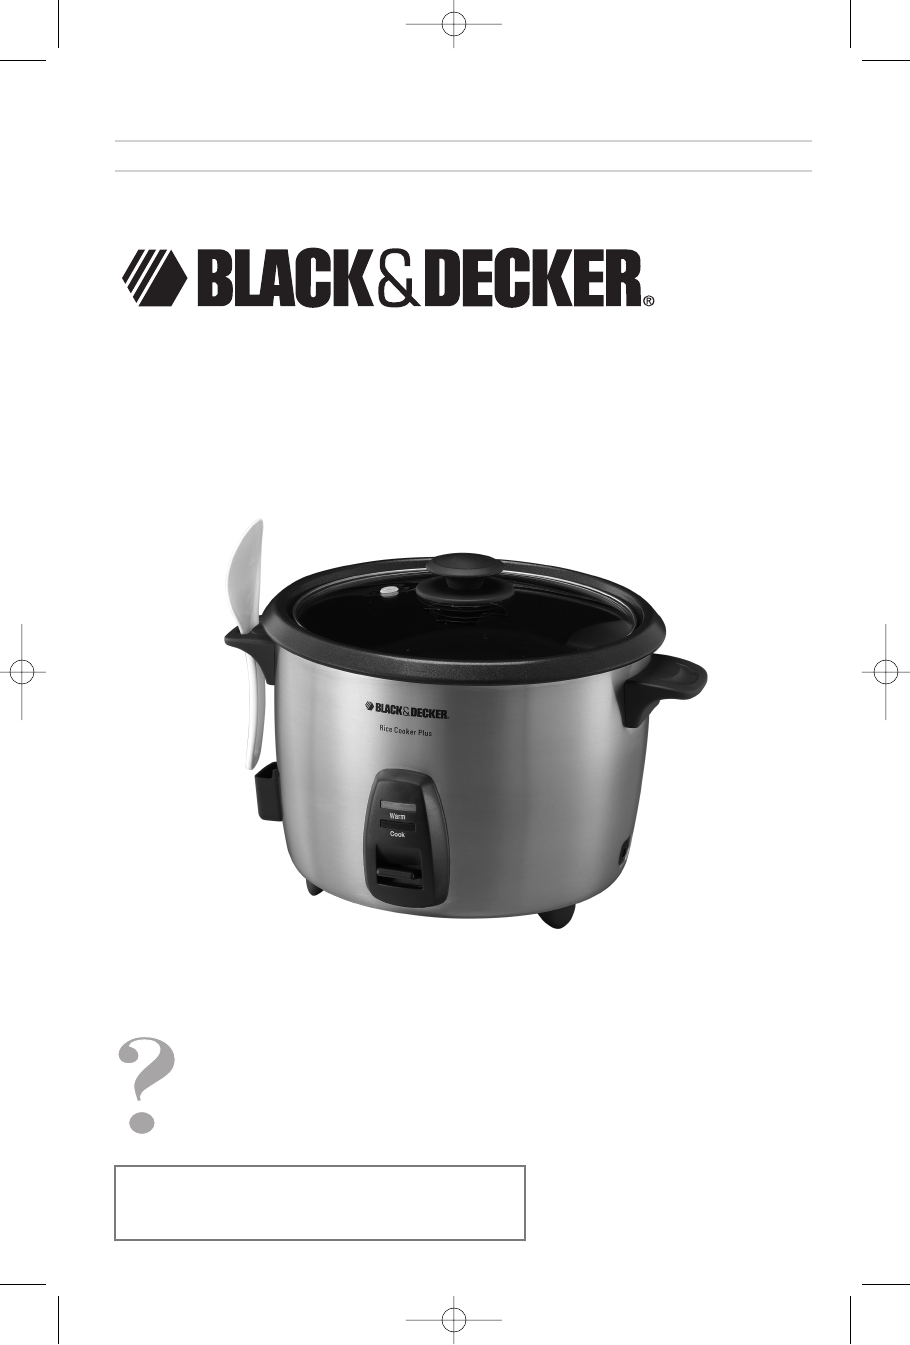 black decker rice cooker rc866 user guide manualsonline com rh kitchen manualsonline com black and decker rice cooker manual rc506 black and decker rice cooker manual 550